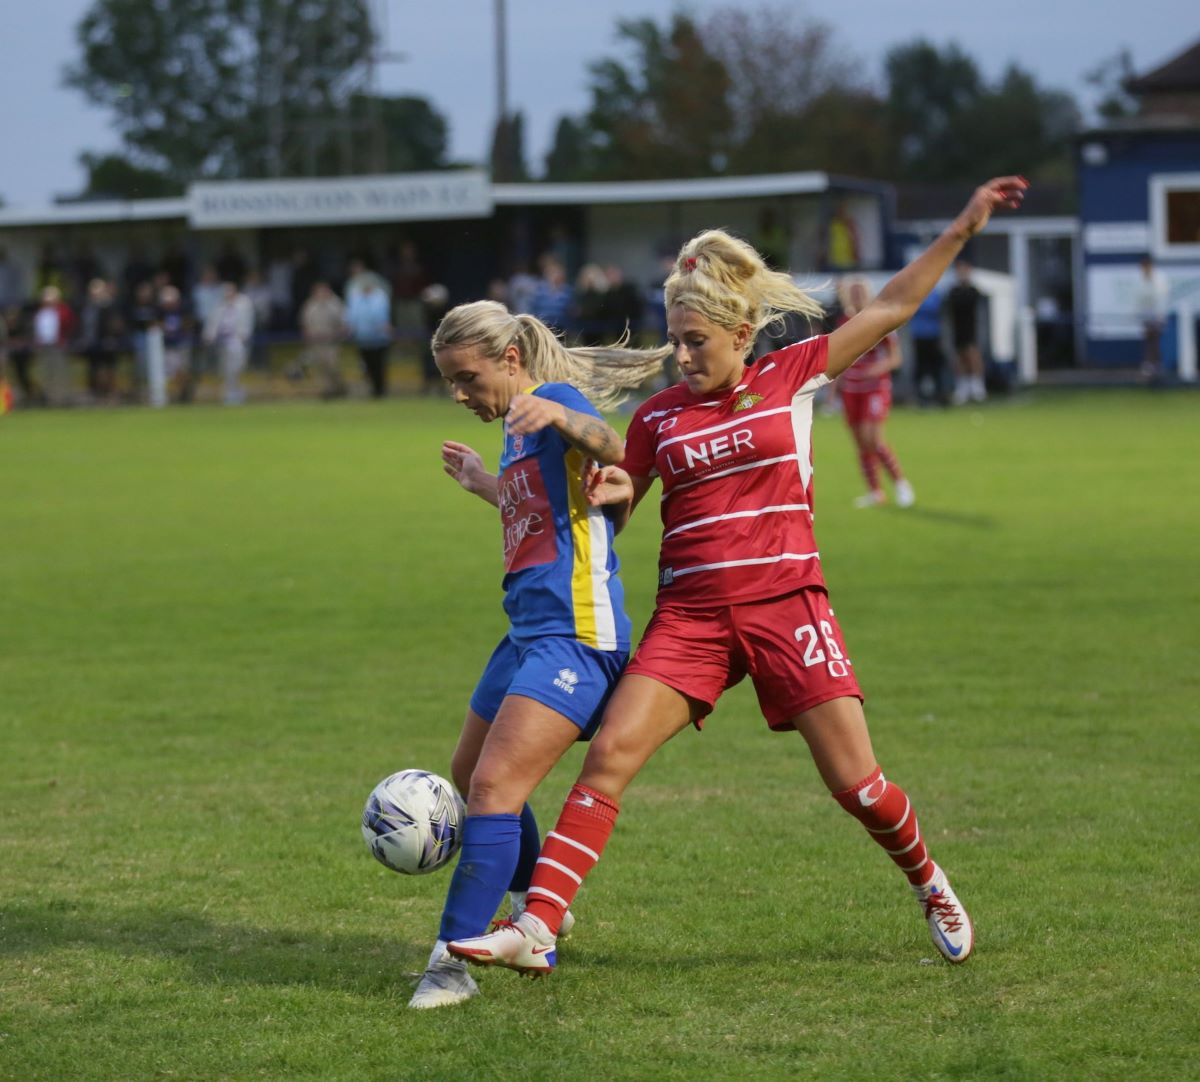 Lincoln City won 5-2 at Doncaster Rovers Belles